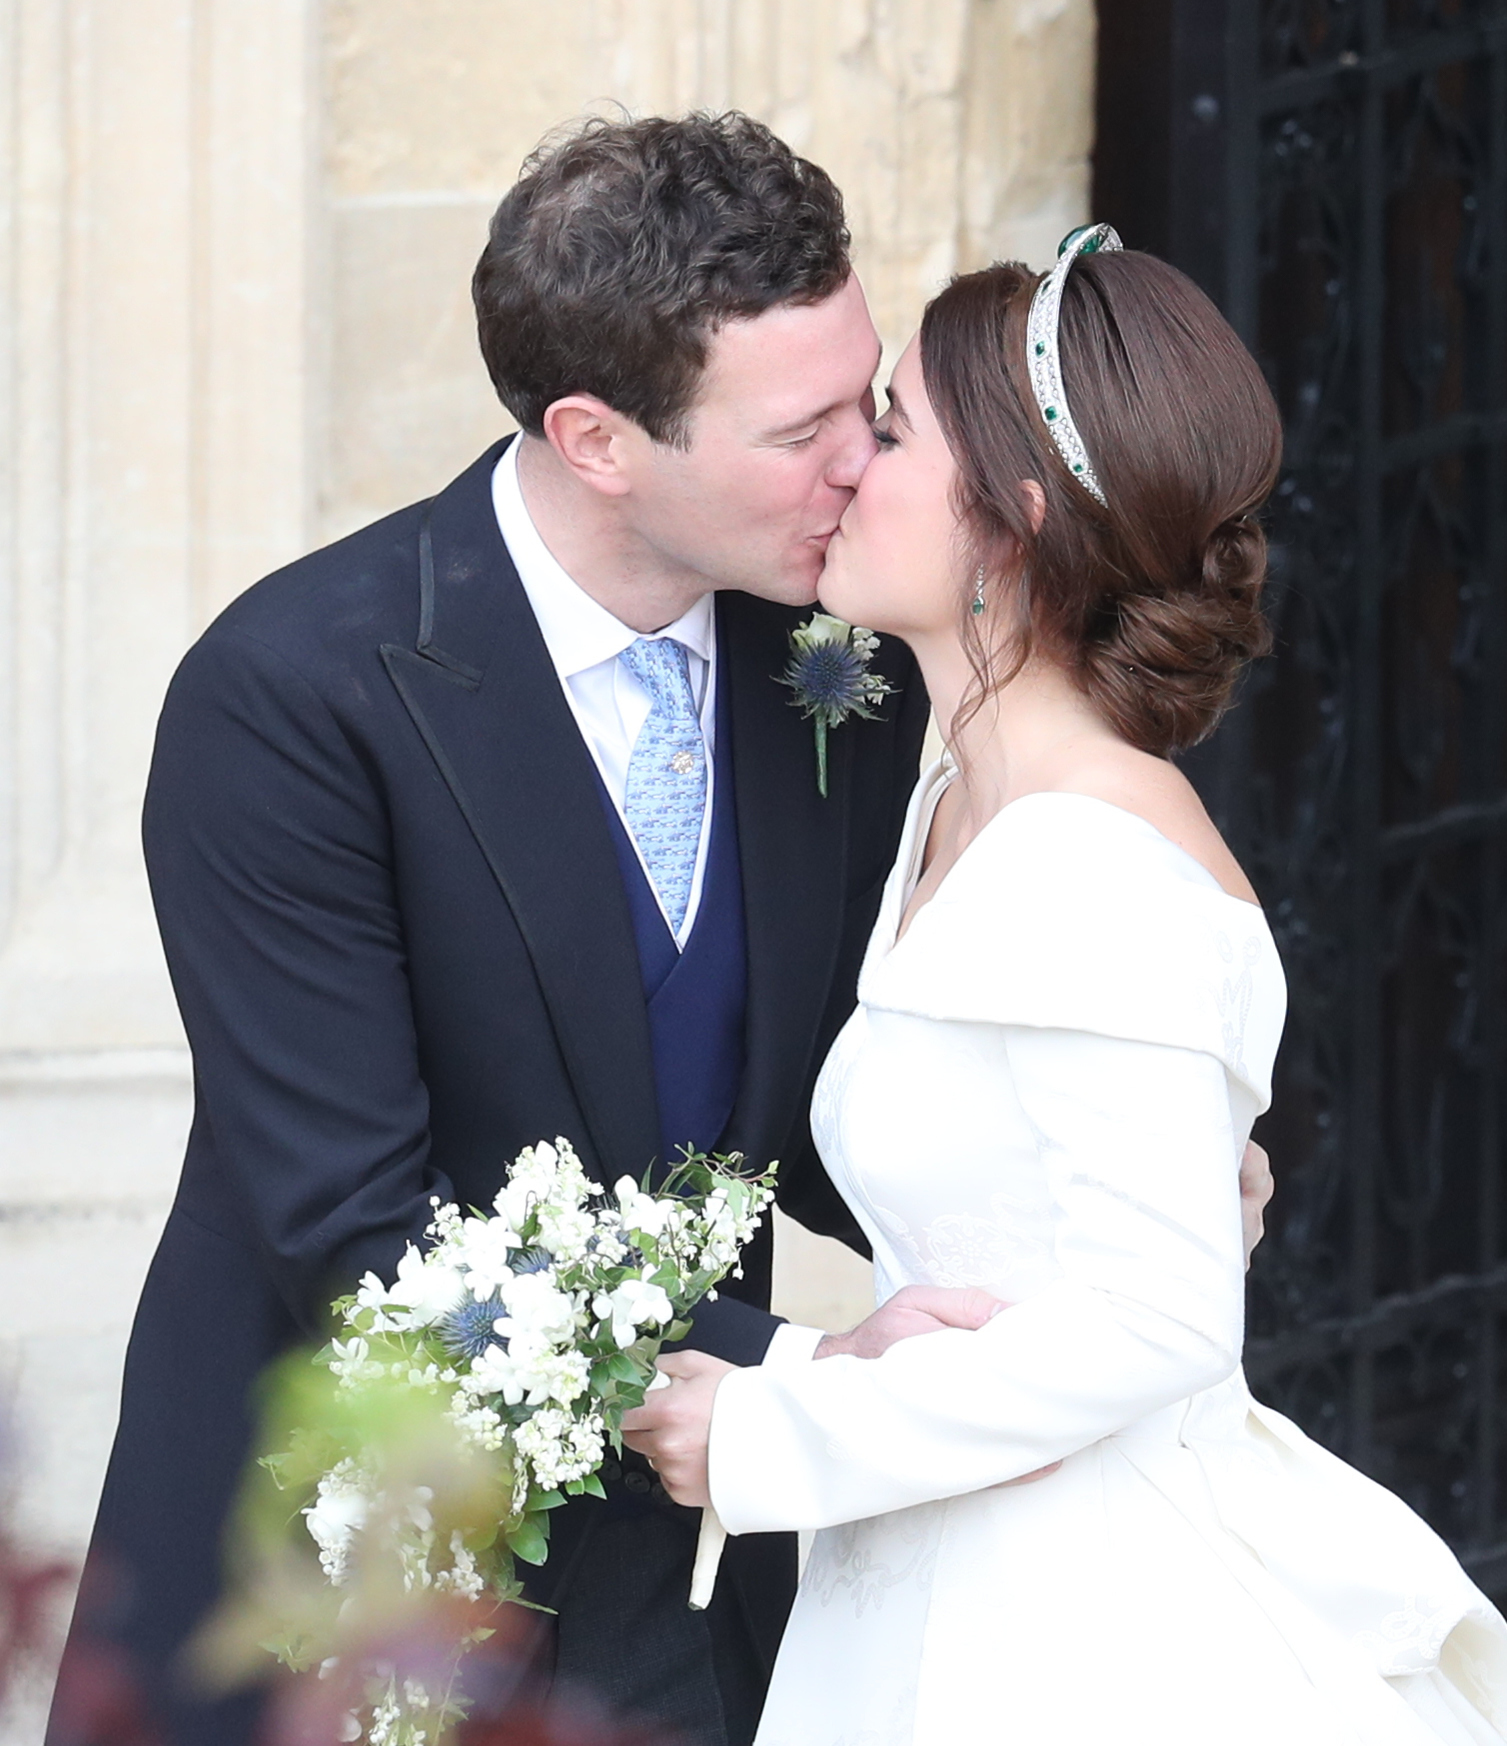 Princess Eugenie Wedding.Princess Eugenie And Jack Brooksbank S Wedding All The Best Photos